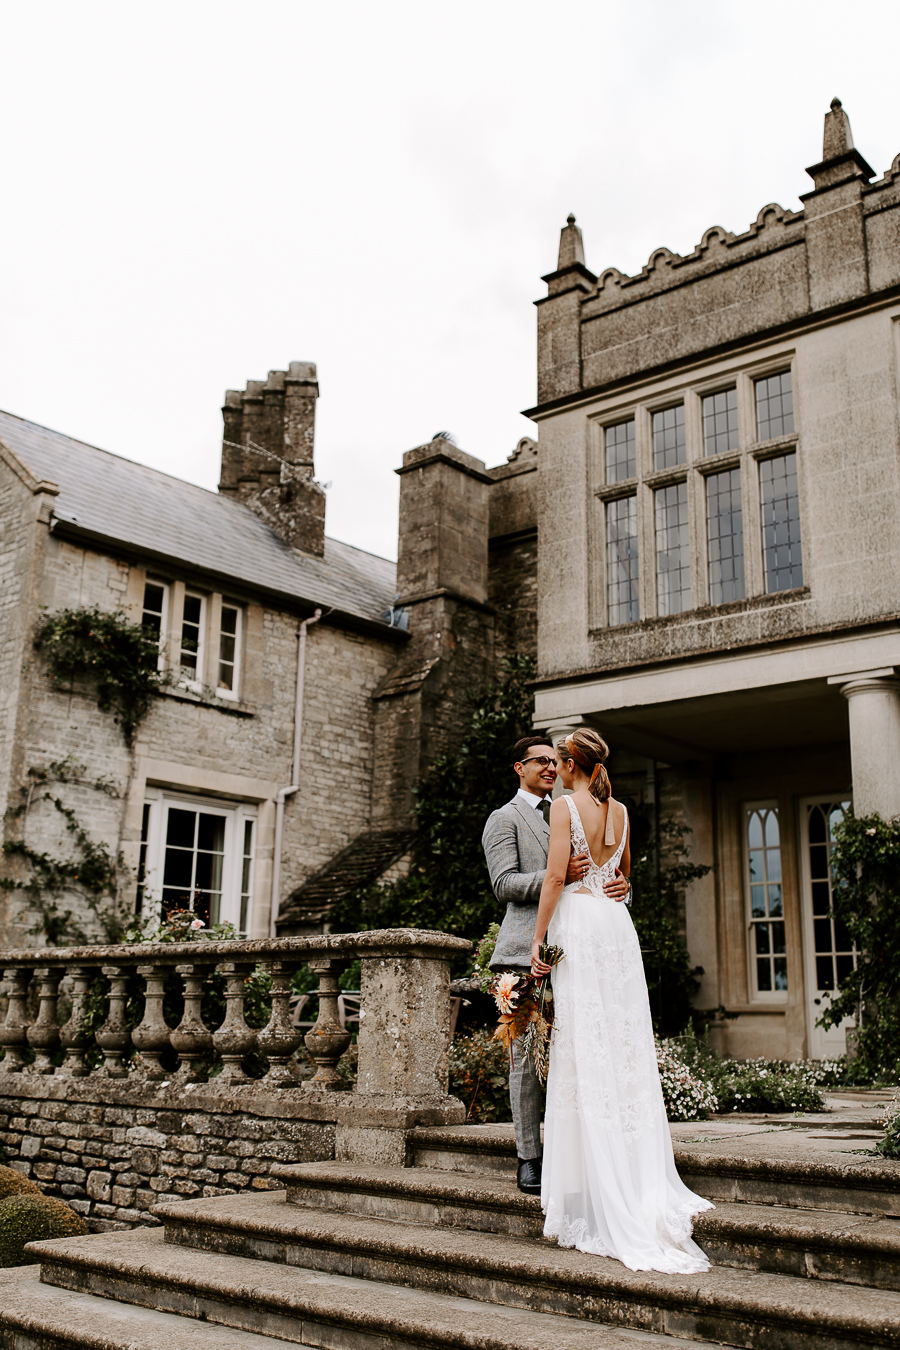 A magical wiltshire wedding venue - the Lost Orangery with Sam Cook Photography (16)